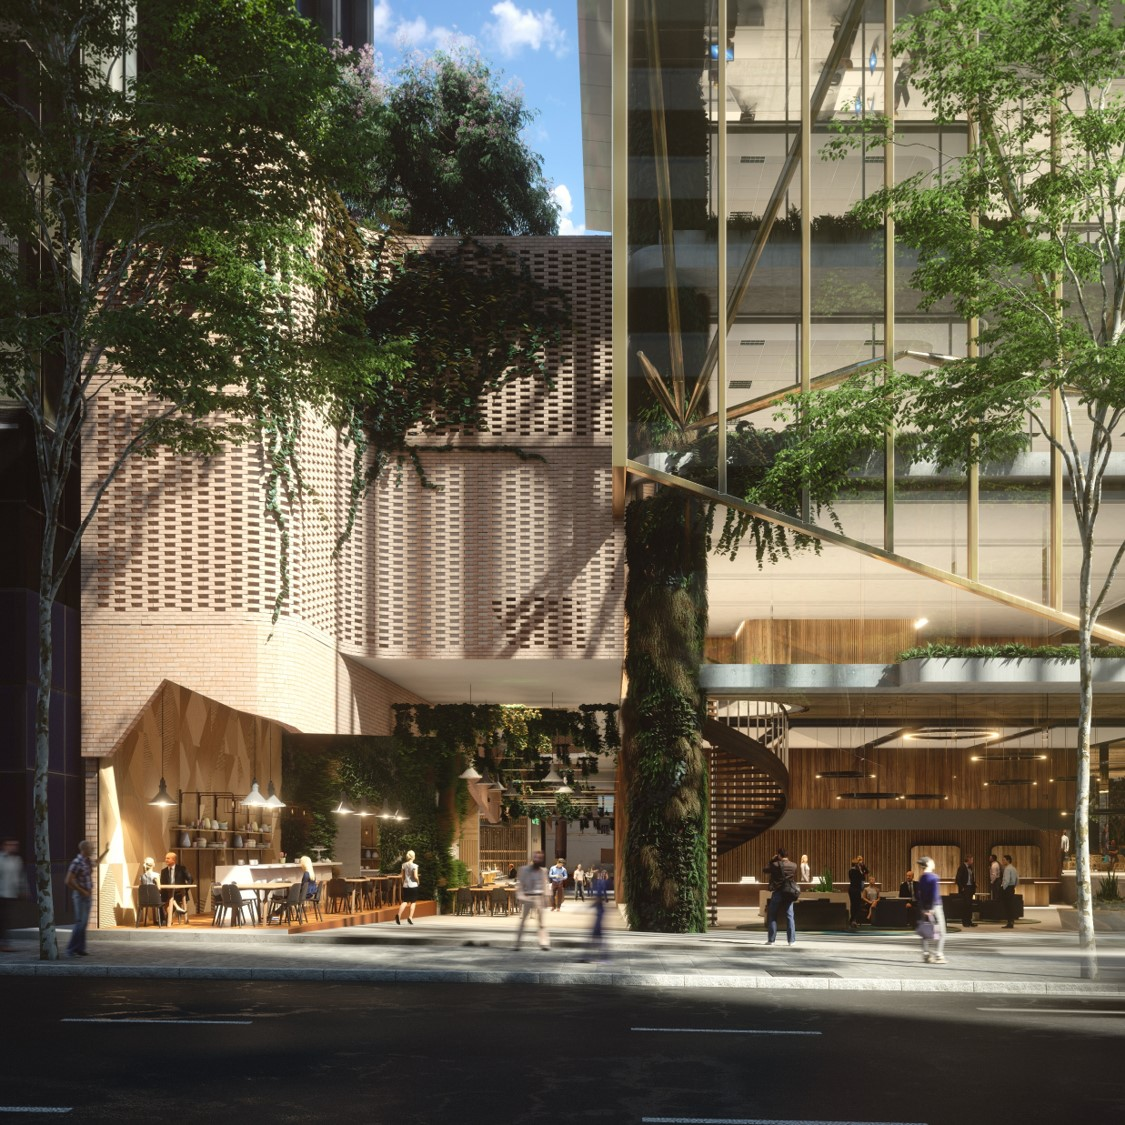 Artist's impression of Mirvac's 80 Ann Street - soon to be the new Suncorp Headquarters